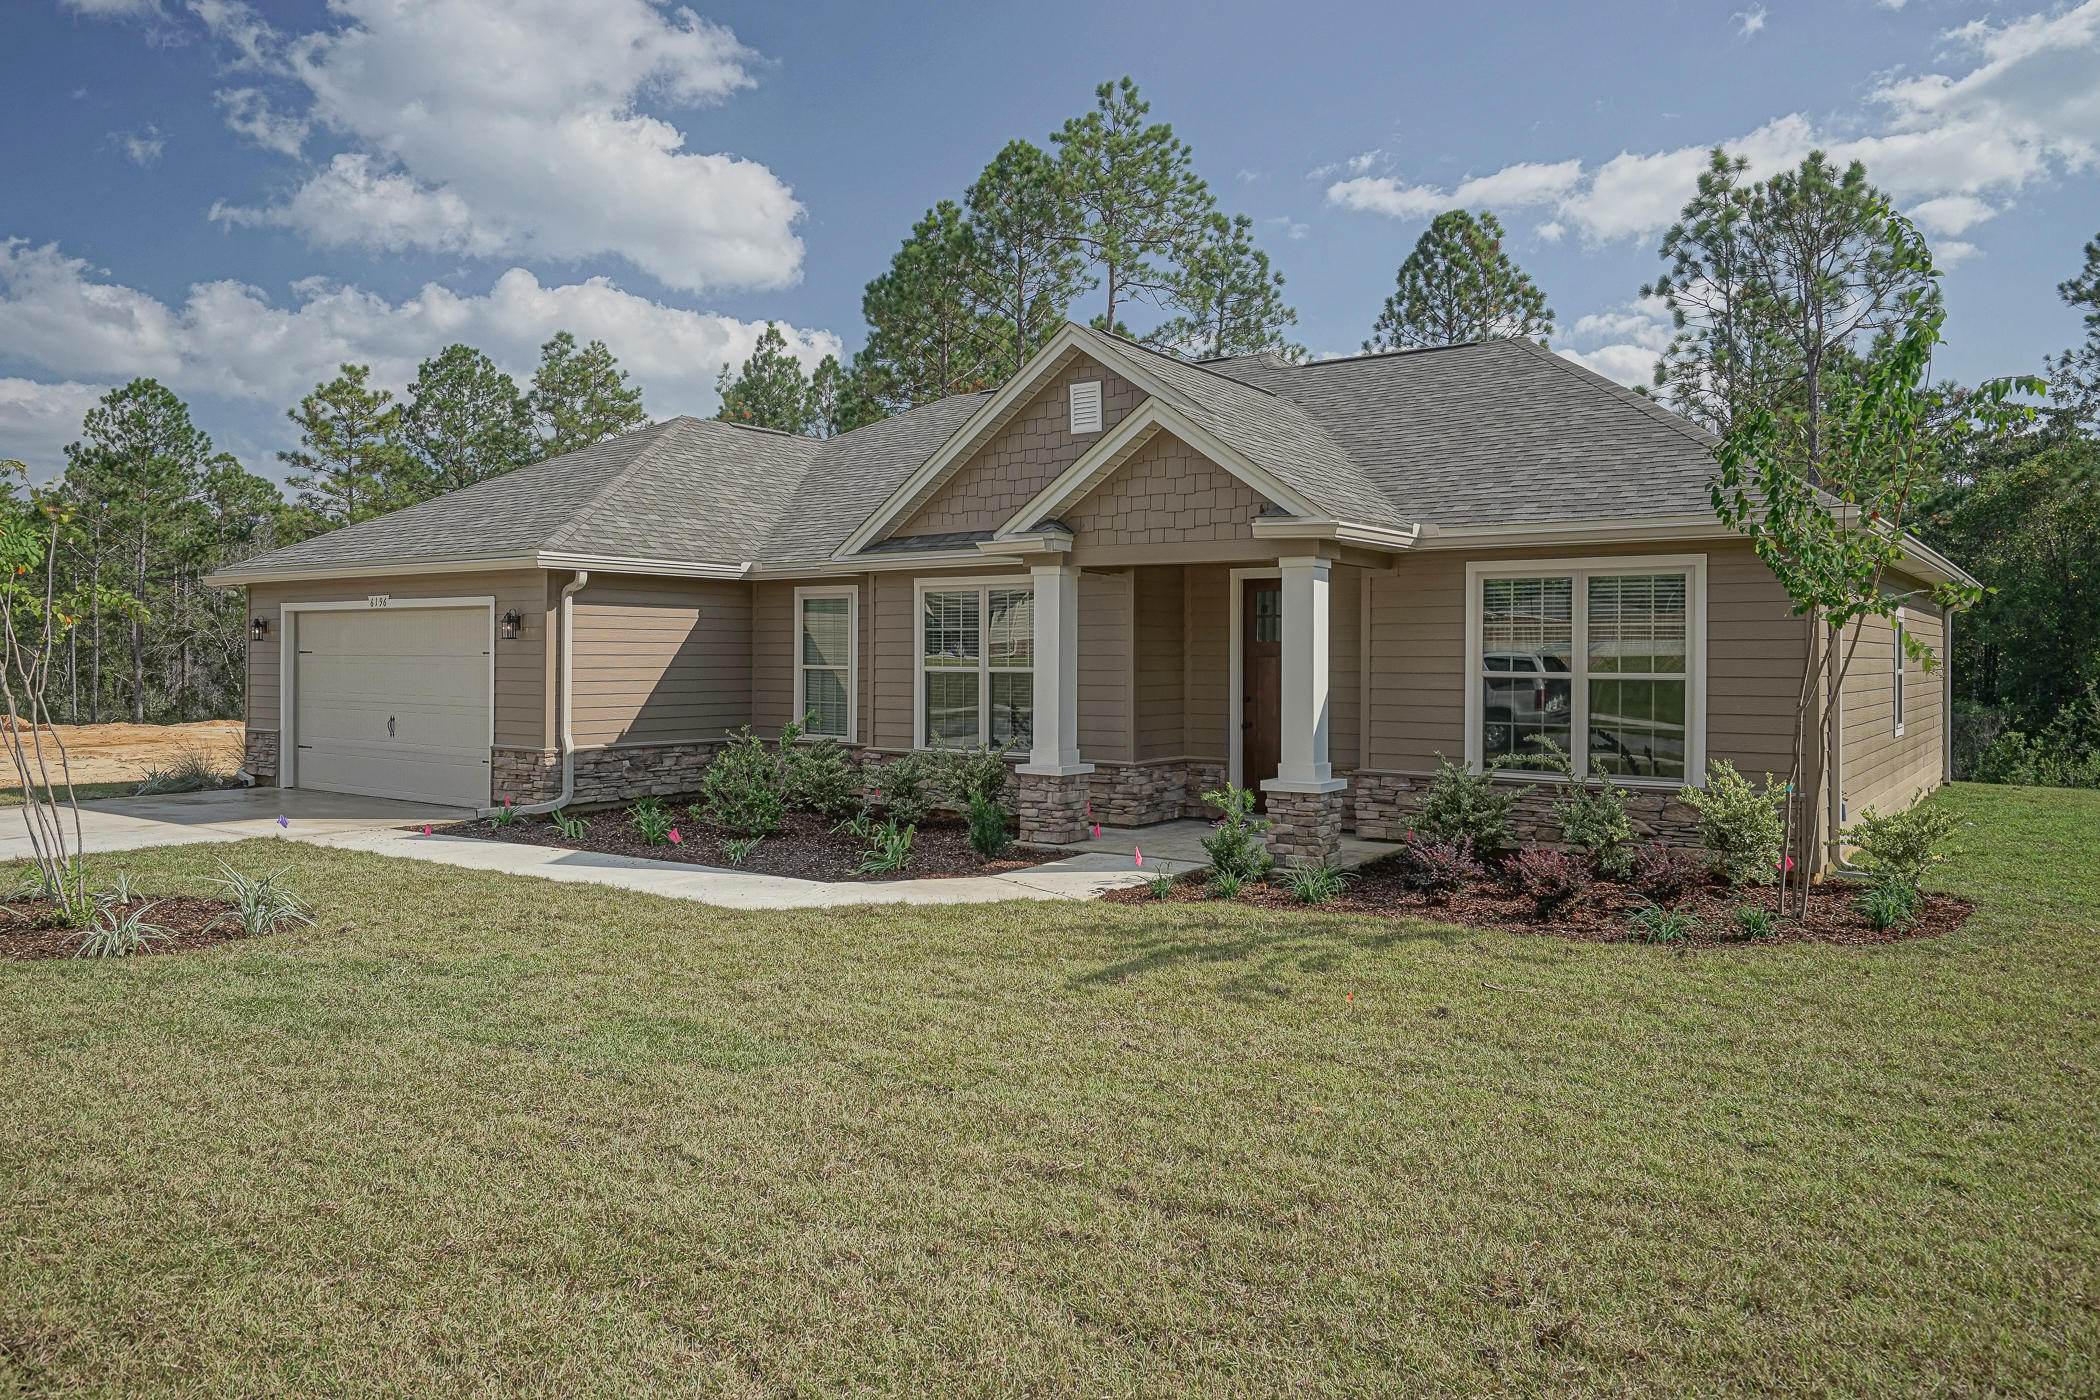 Photo of home for sale at 6196 Timberland Ridge, Crestview FL